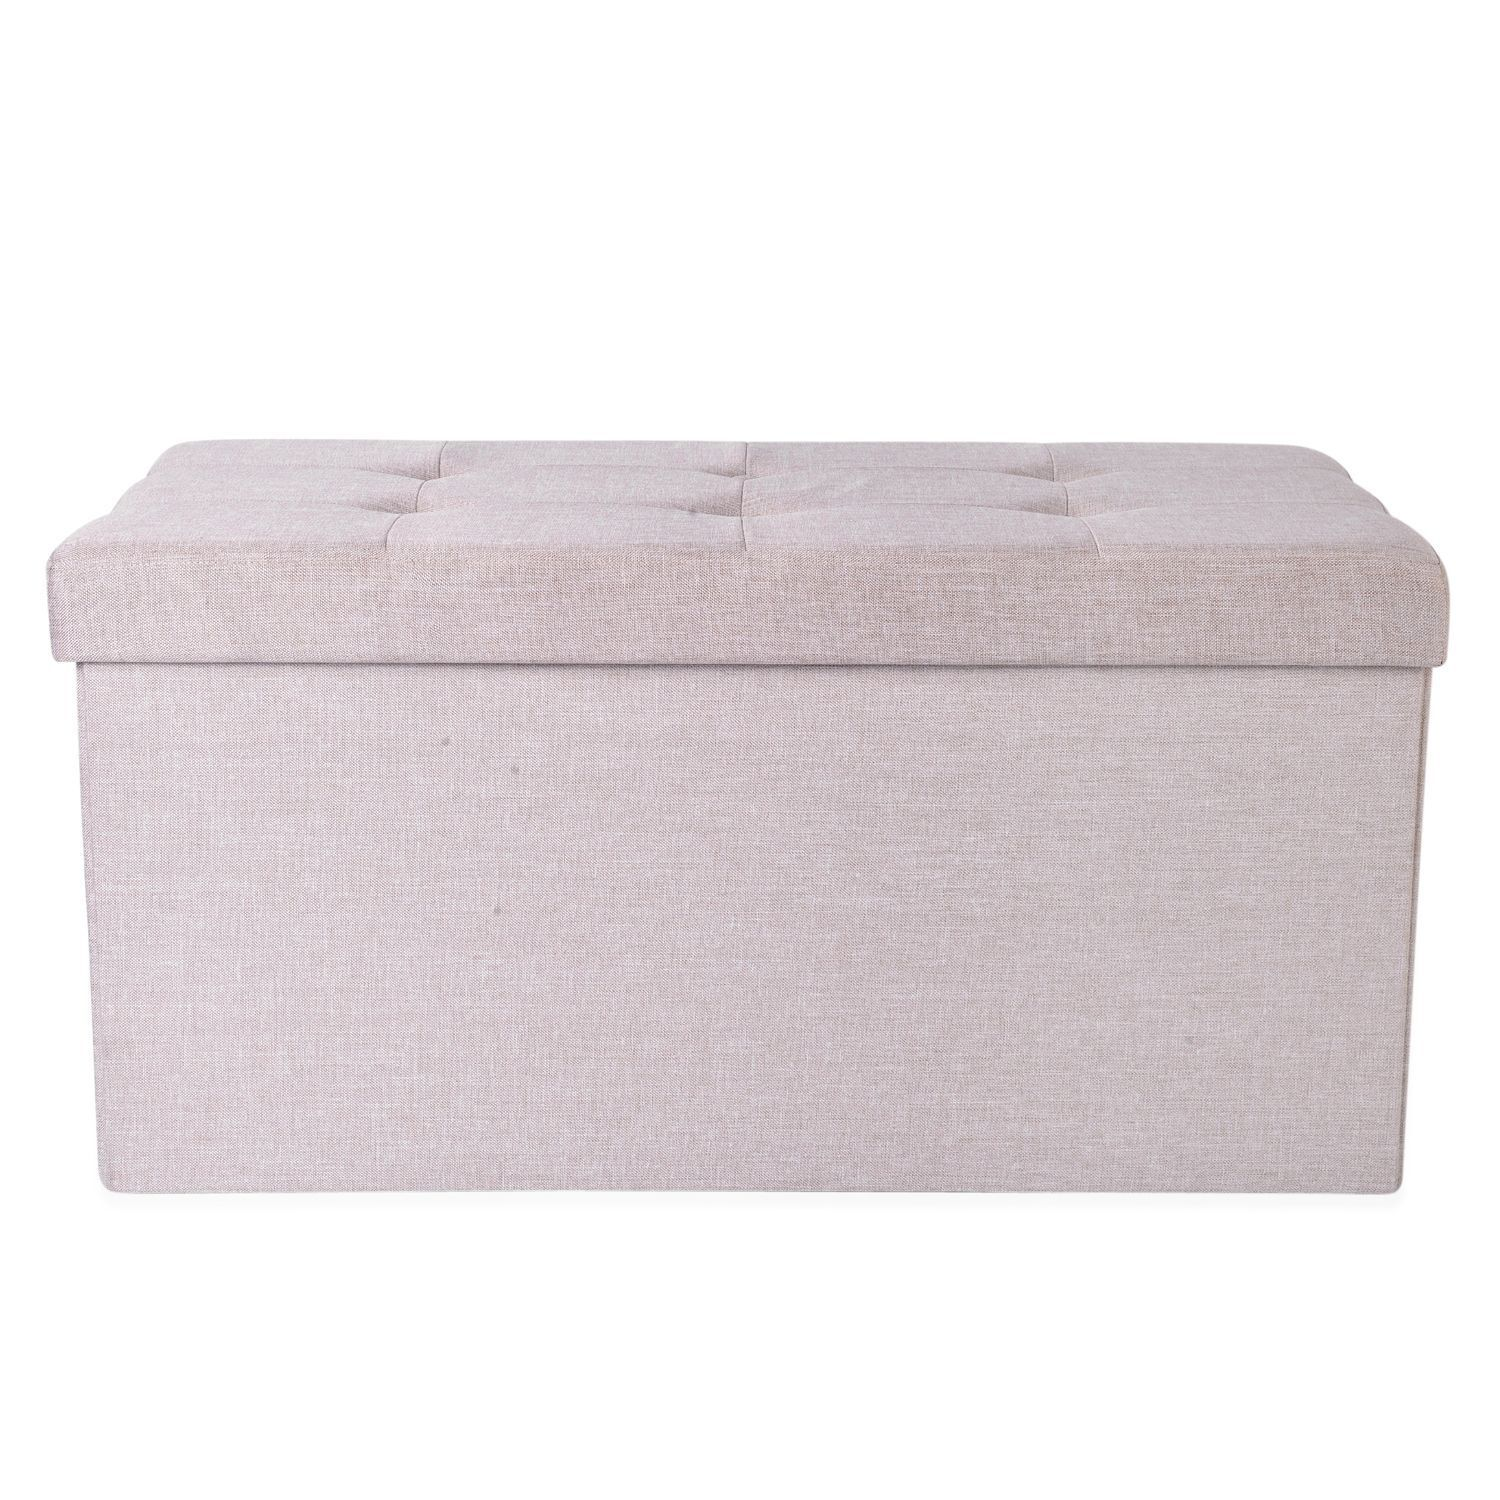 Cream Colour Linen Foldable Large Storage Ottoman with Padded Seat